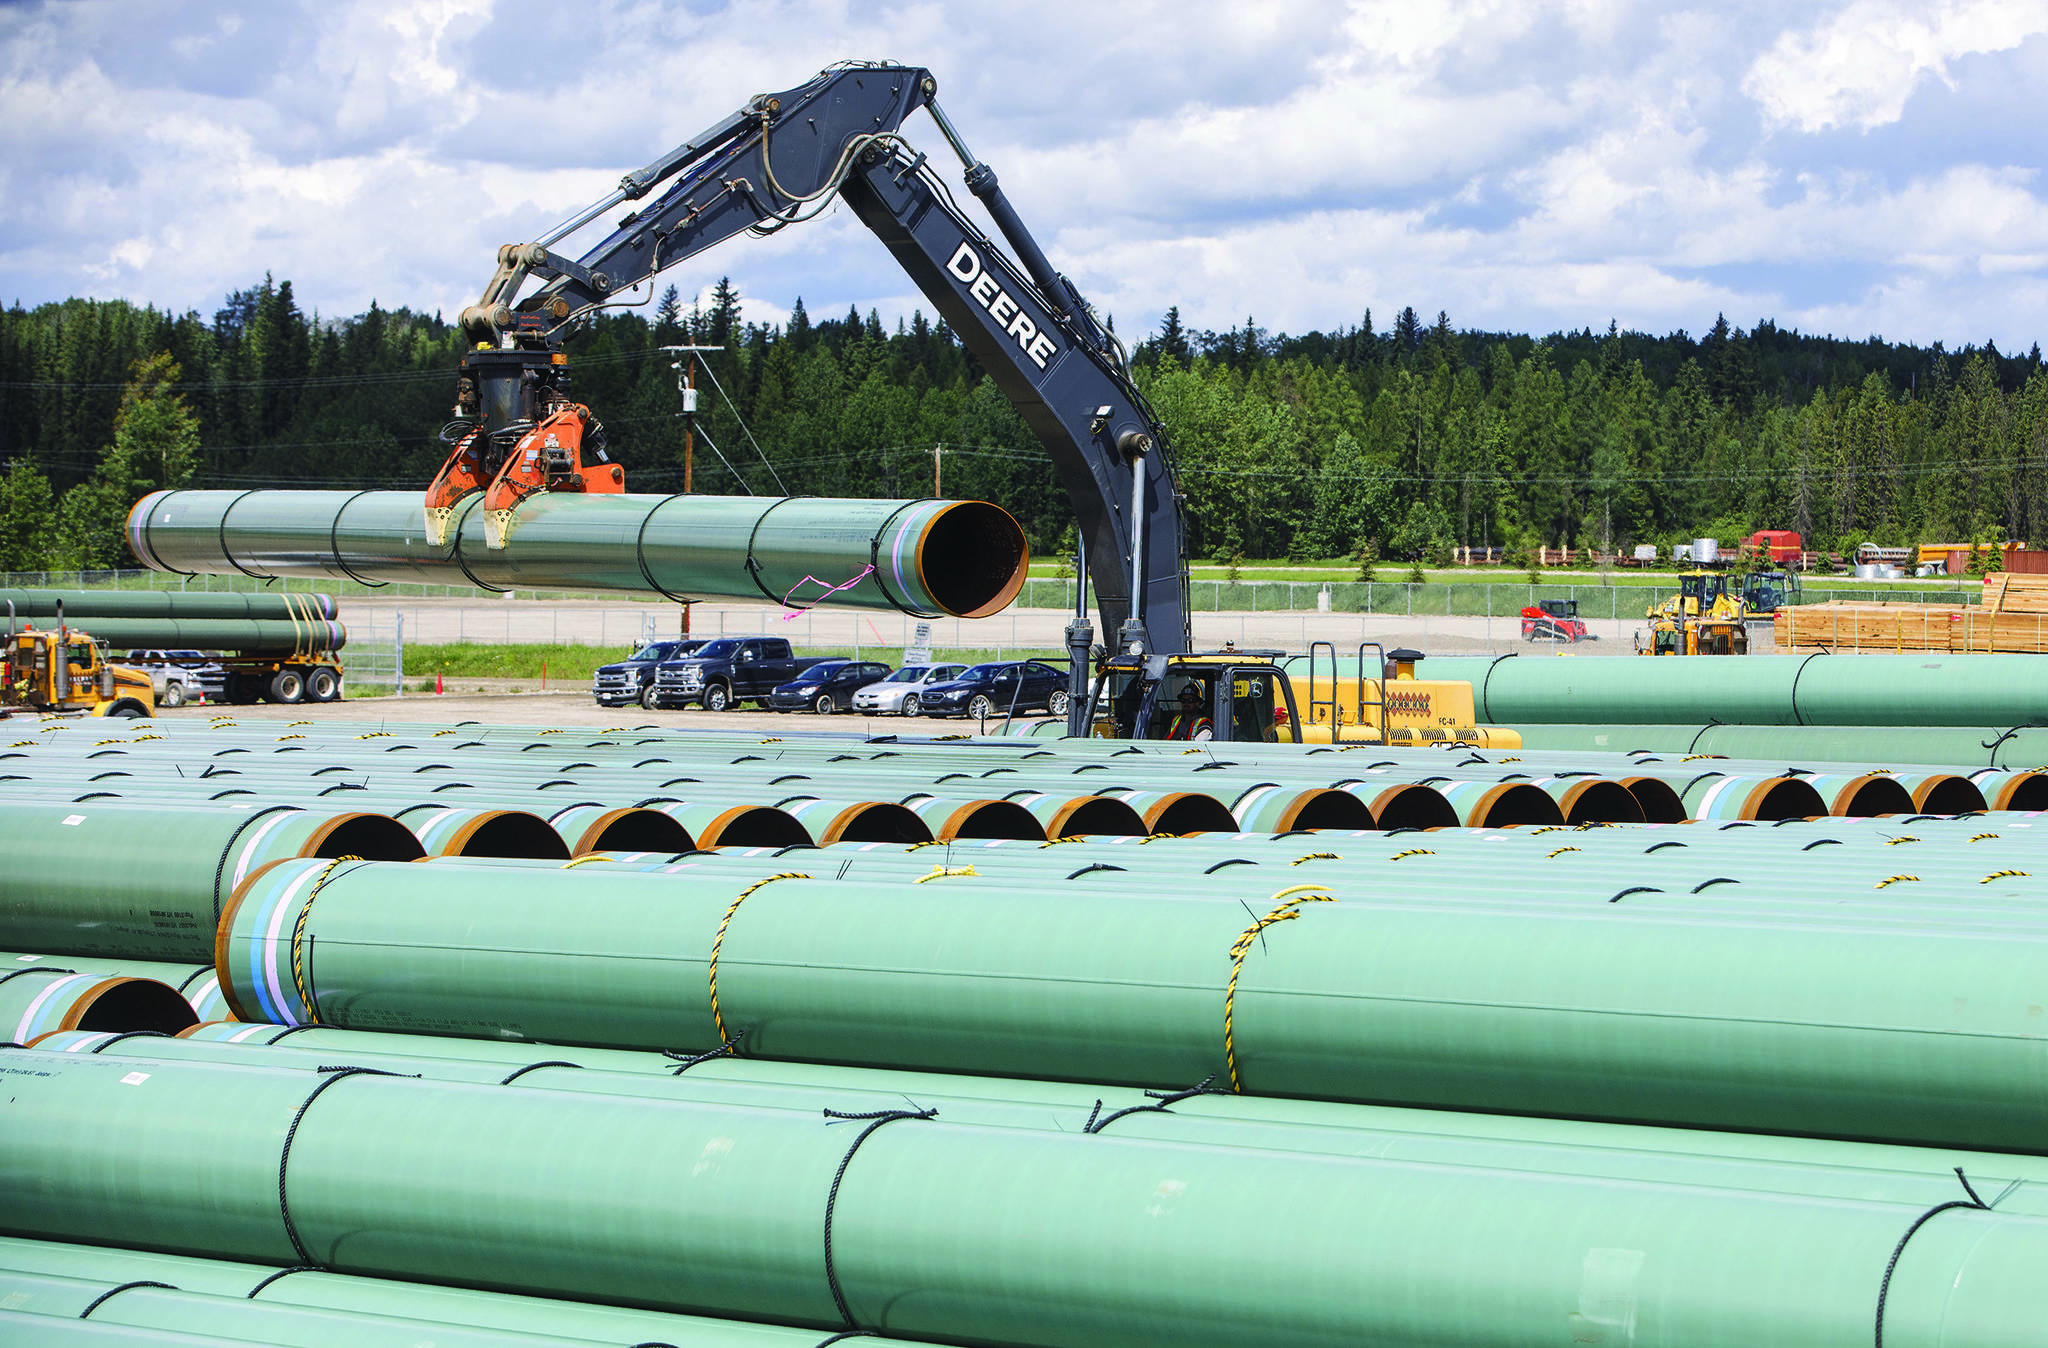 Pipe for the Trans Mountain pipeline is unloaded in Edson, Alta. on Tuesday June 18, 2019. The Federal Court of Appeal is set to release its decision on the latest challenge of the Trans Mountain pipeline expansion on Tuesday. THE CANADIAN PRESS/Jason Franson